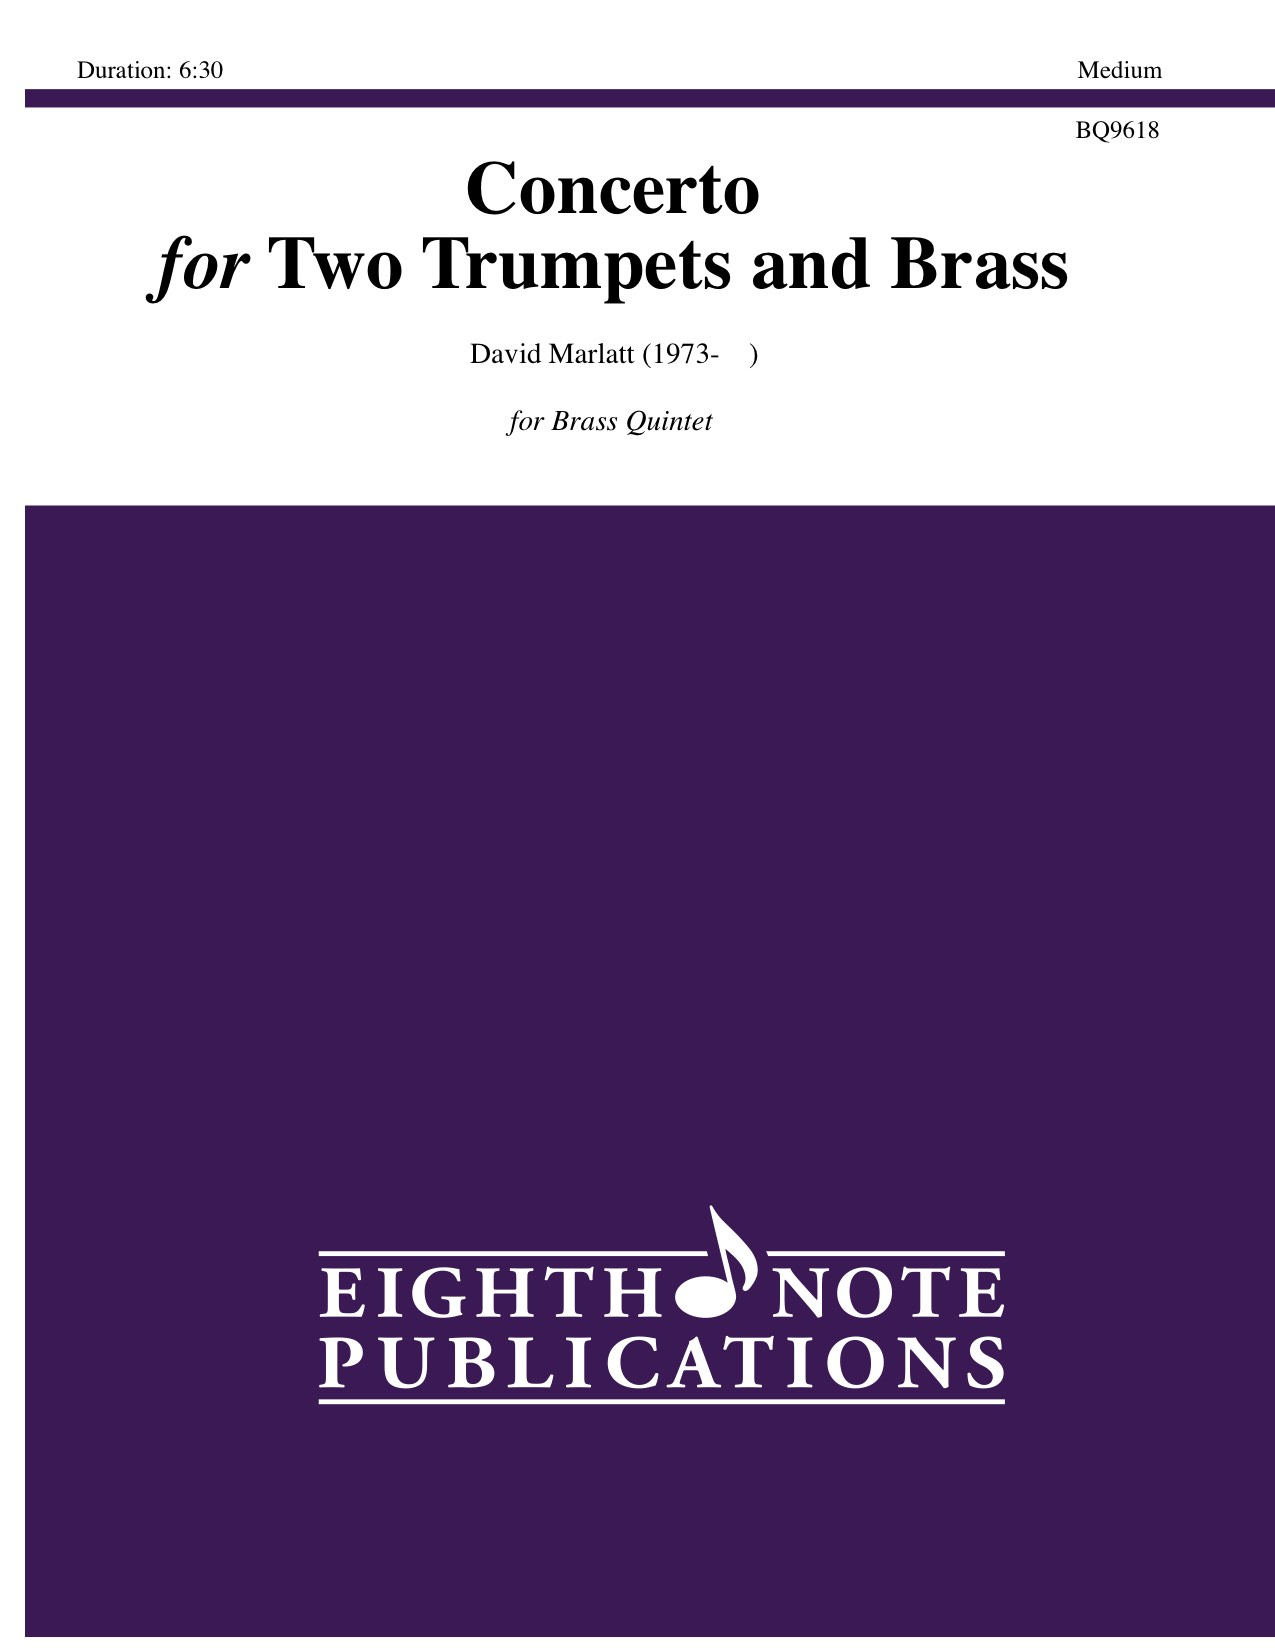 Concerto for Two Trumpets and Brass - David Marlatt